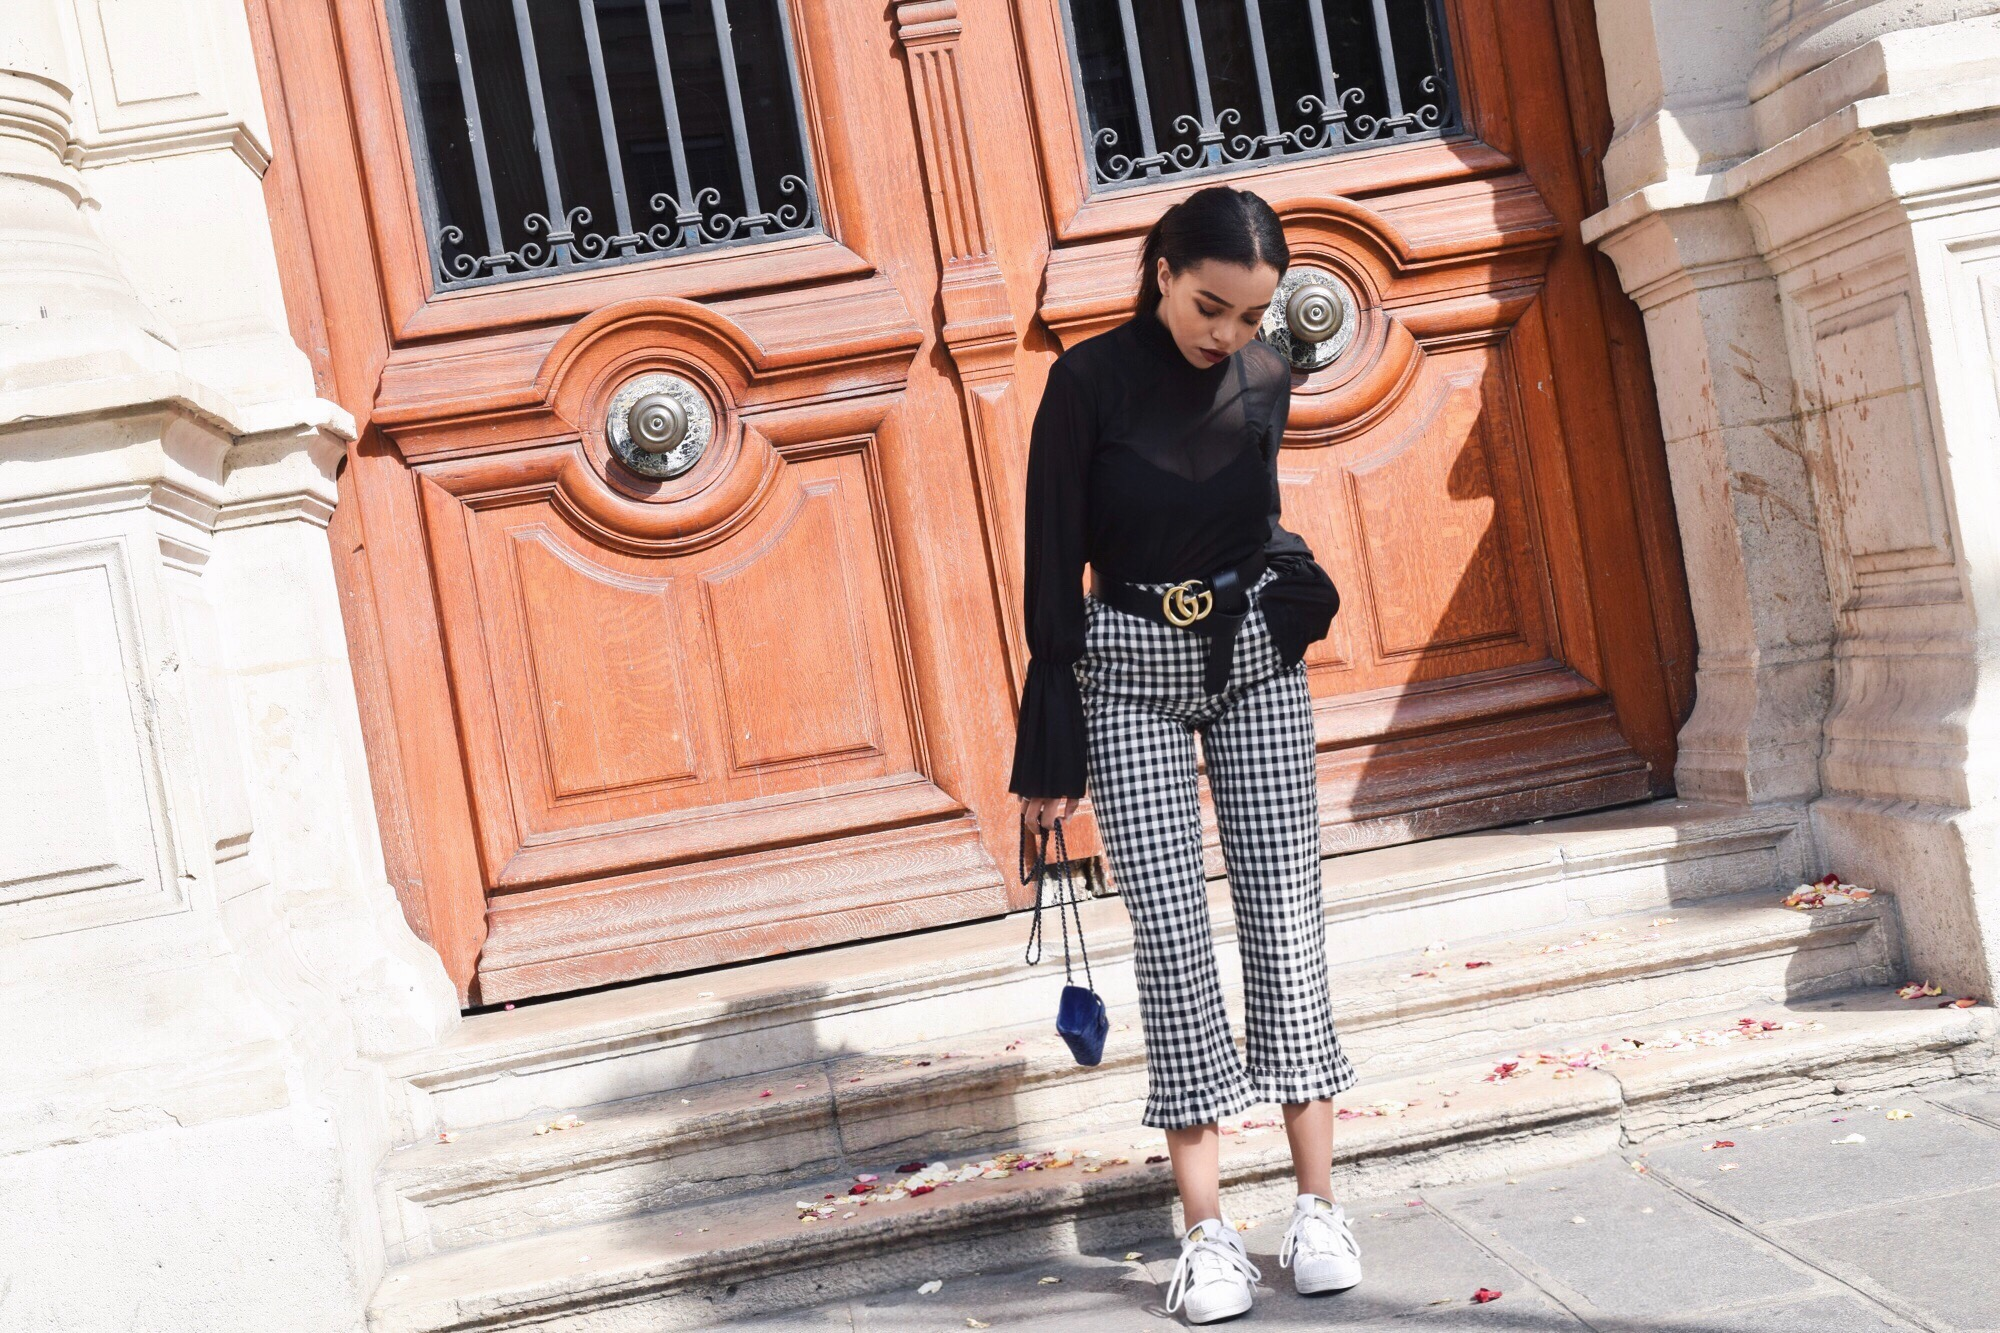 Gingham Frills // Topshop Gingham Frill Cropped Pants // Zara Sheer Bell Sleeve Blouse // Adidas Superstars in Black & White // Chanel Blue Velvet Wallet On Chain // Gucci Double G Gold & Black Belt // Paris Travel Diary // Los Angeles Fashion Blogger Daphne Blunt // Paris Le Marais // Gingham Print Spring Trend: To Style, With Love